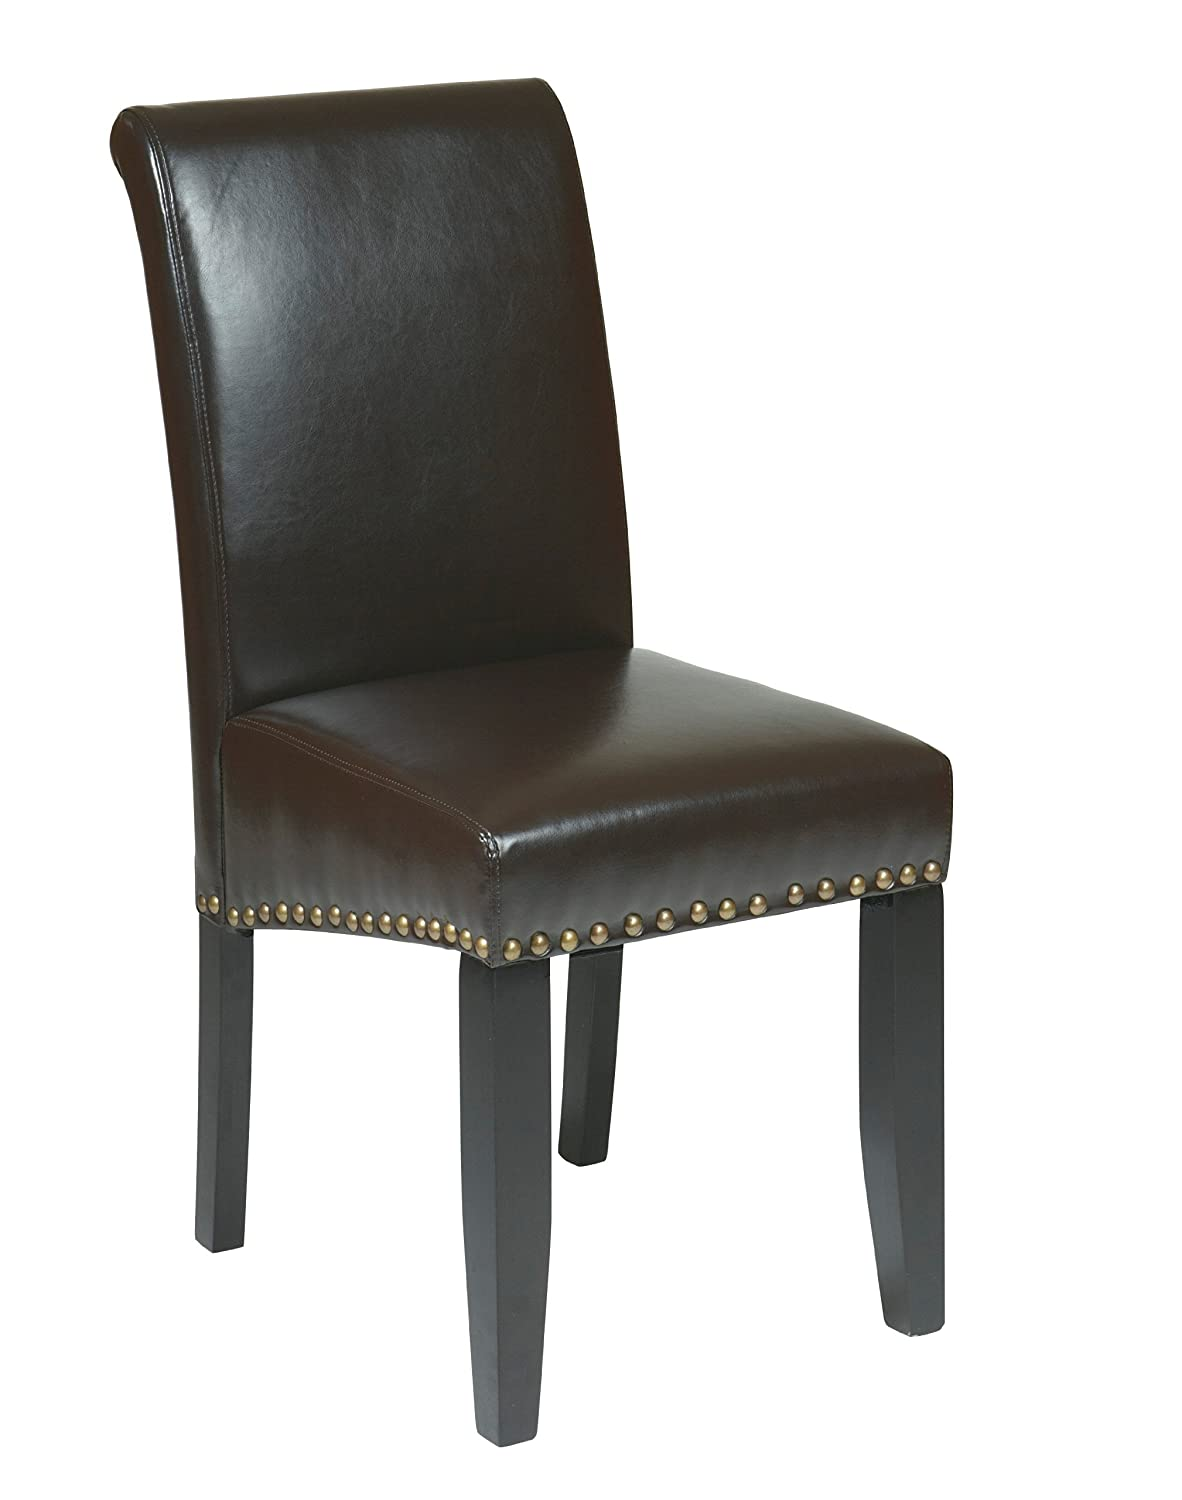 OSP Designs Metro Bonded Leather Parson's Accent Dining Chair with Nail Heads, 20-inch, Espresso